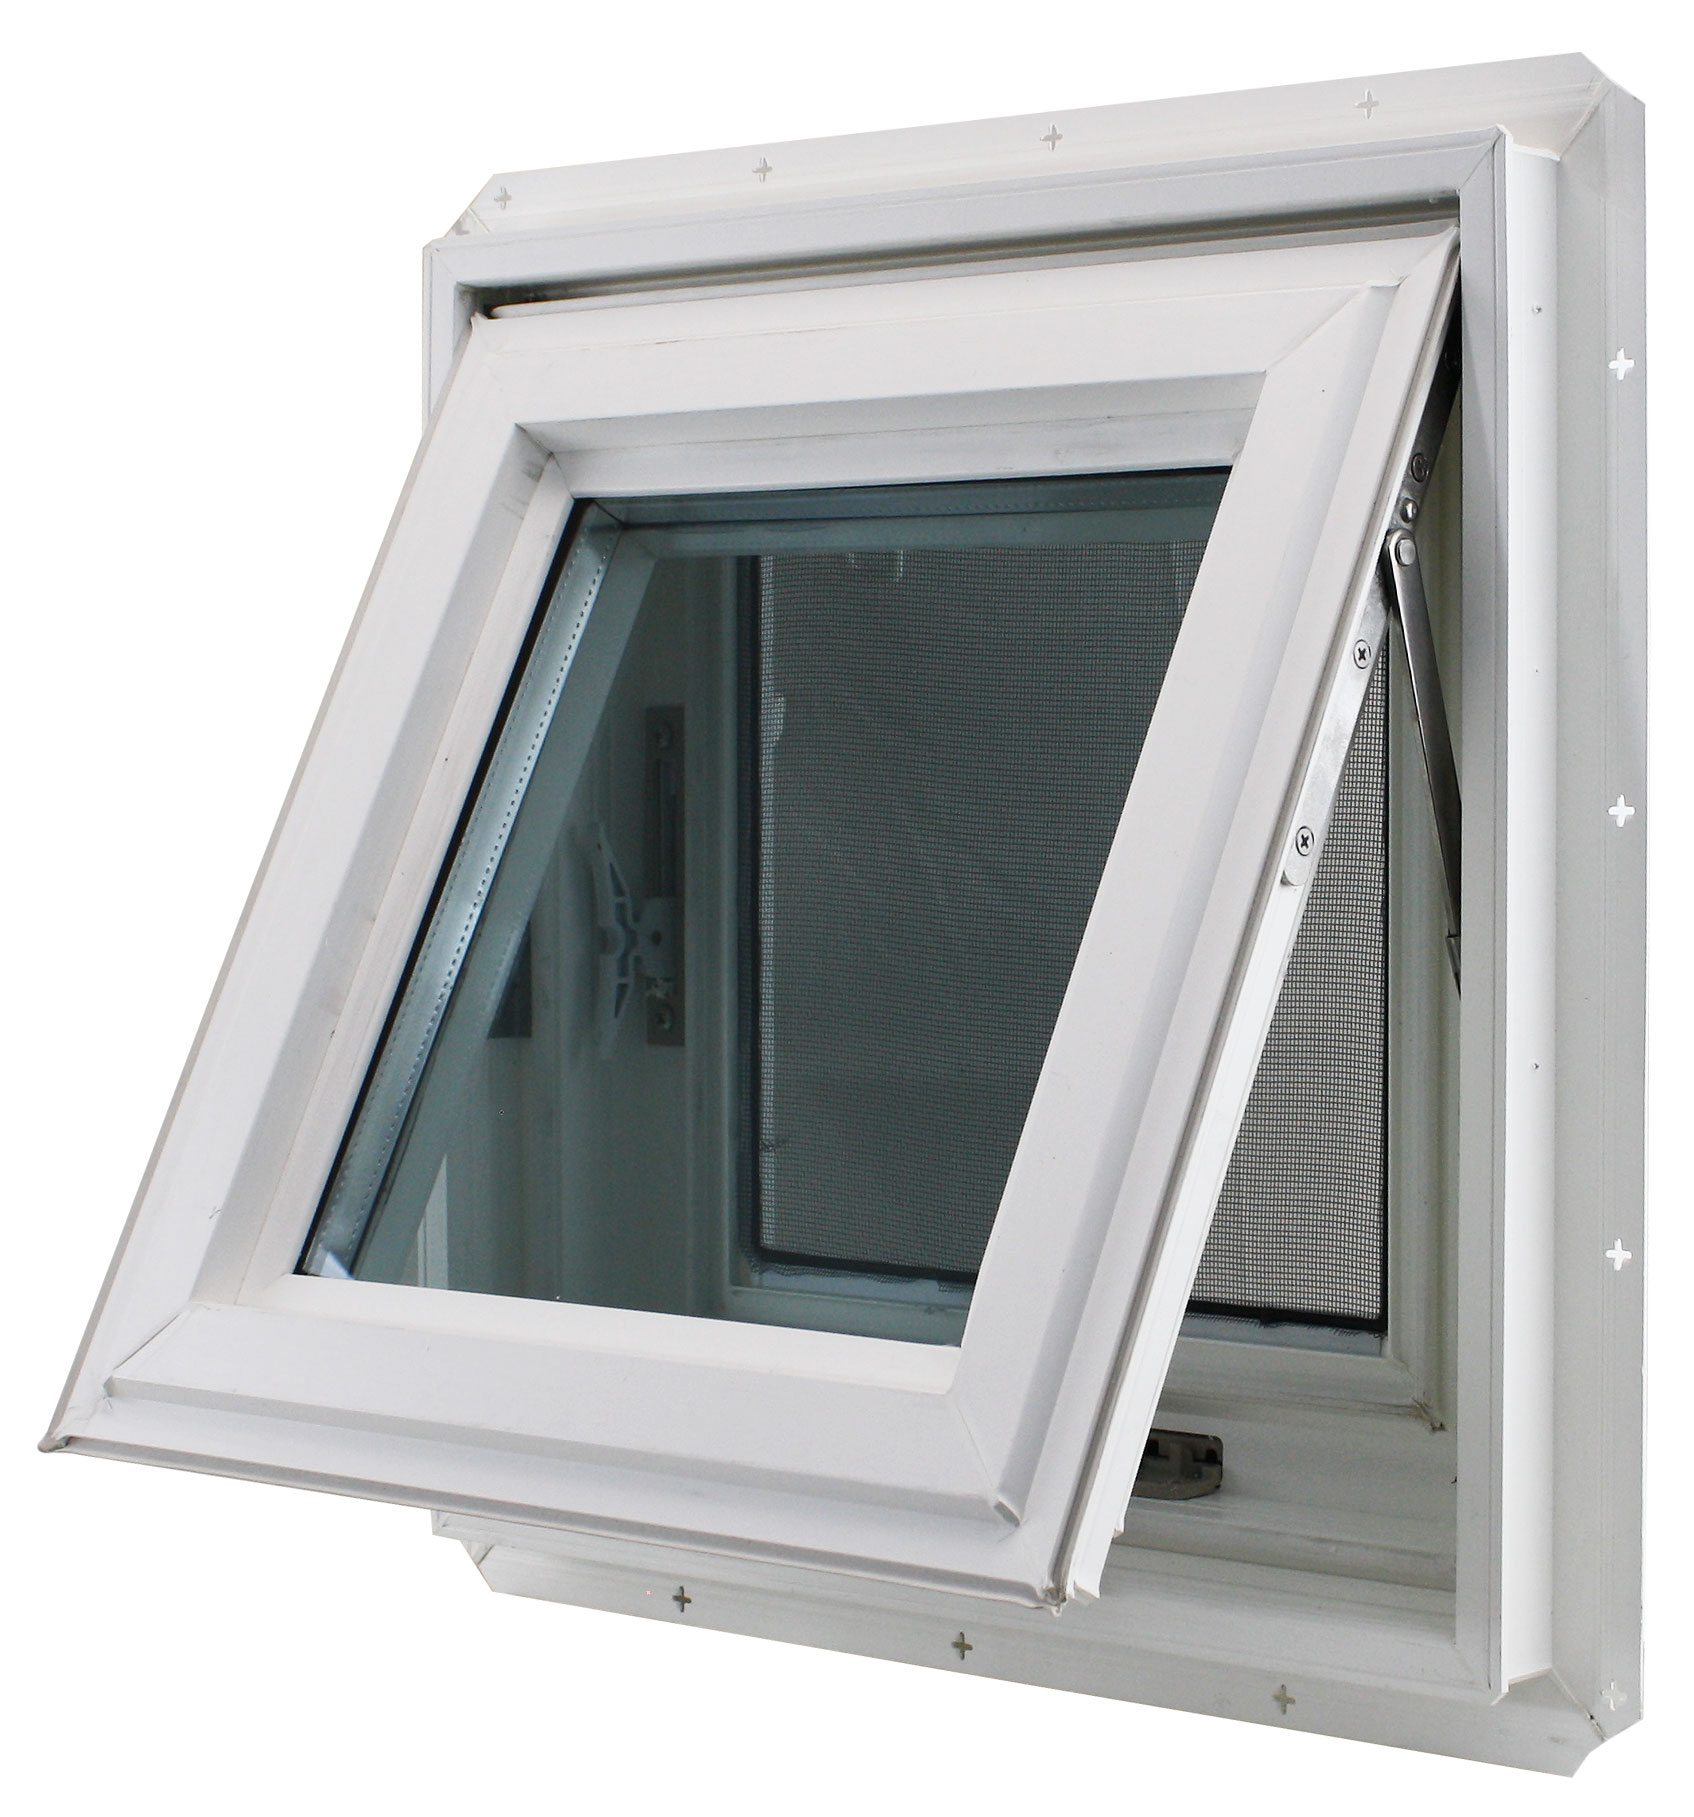 """Double Pane Awning Window 17/"""" x 17/"""" TEMPERED GLASS Window Venting Bathroom"""